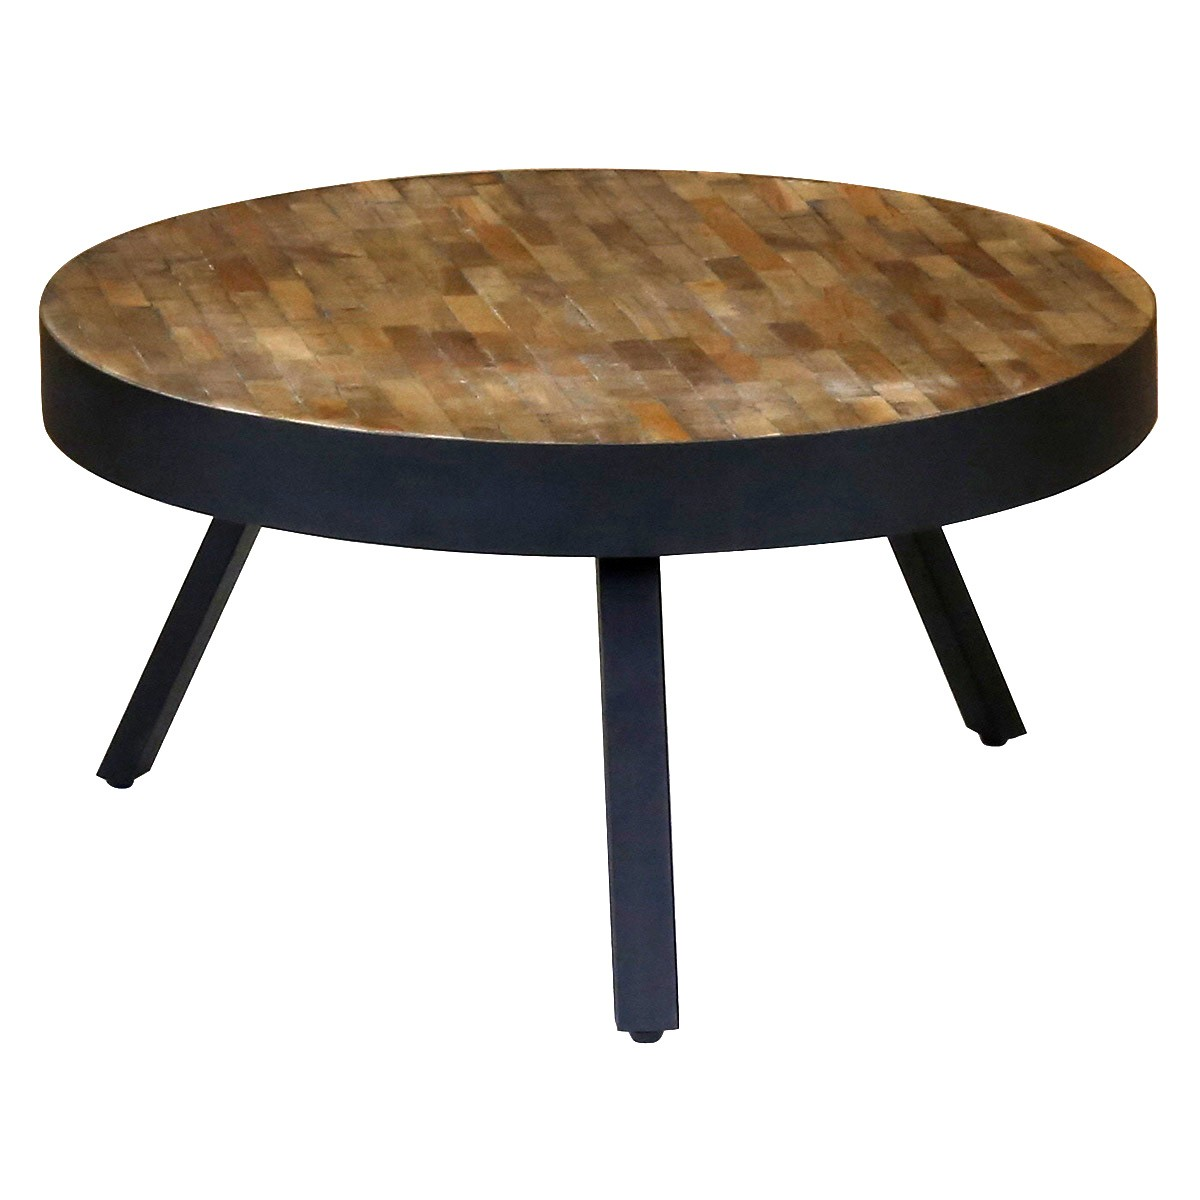 Table basse ronde teck et m tal style industriel et loft 76 cm woody zago - Table basse ronde metal ...